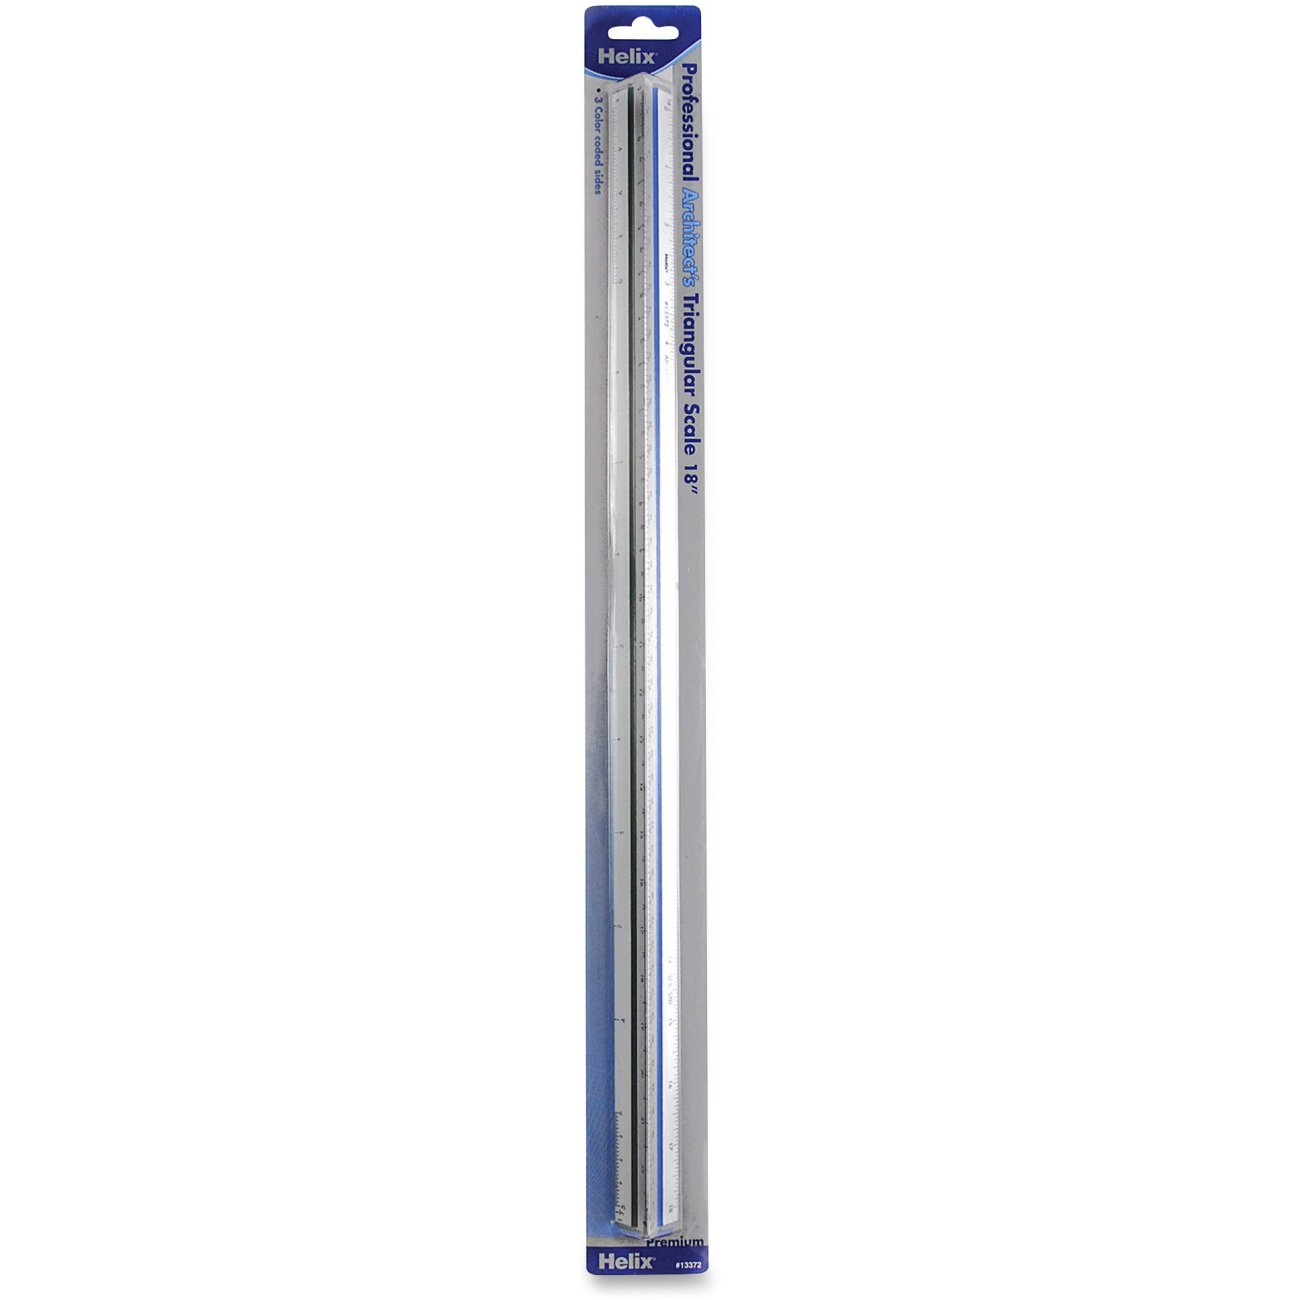 Helix Professional Architect's Metal Triangular Scale 18 Inch / 45cm (13372)